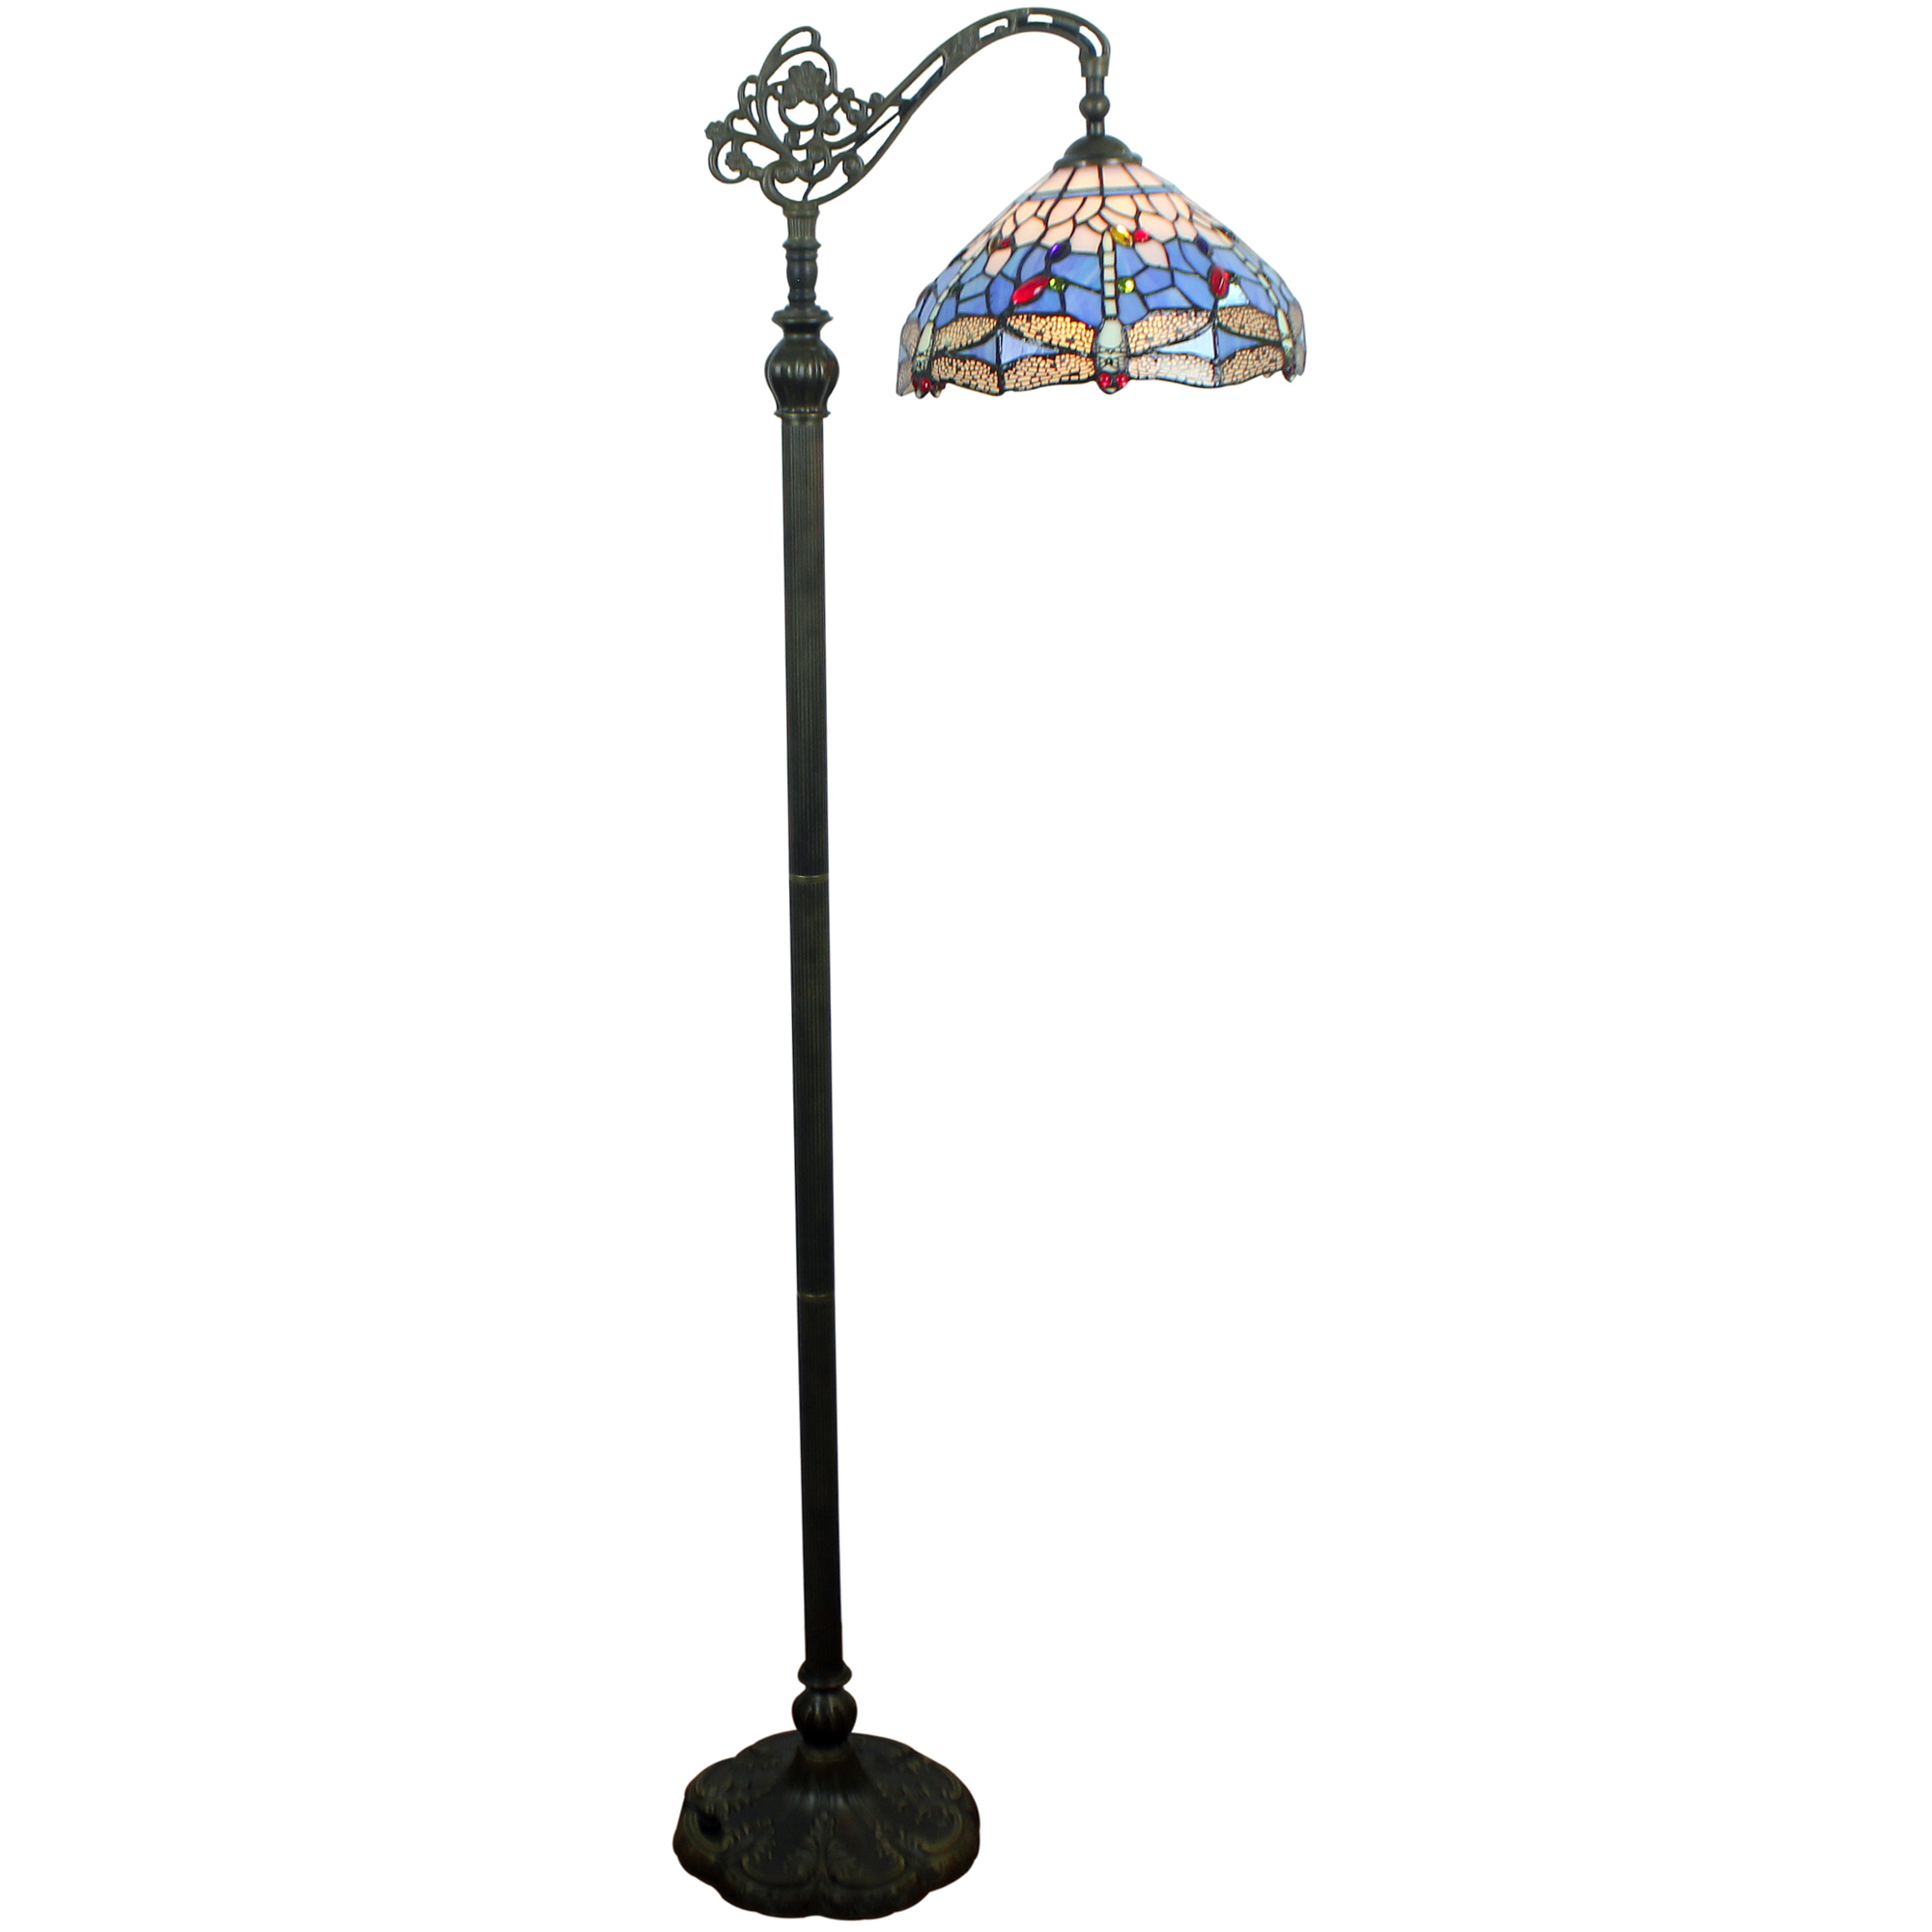 Forest Tiffany Blue Dragonfly Tiffany Style Floor Lamp Reviews Temple Webster